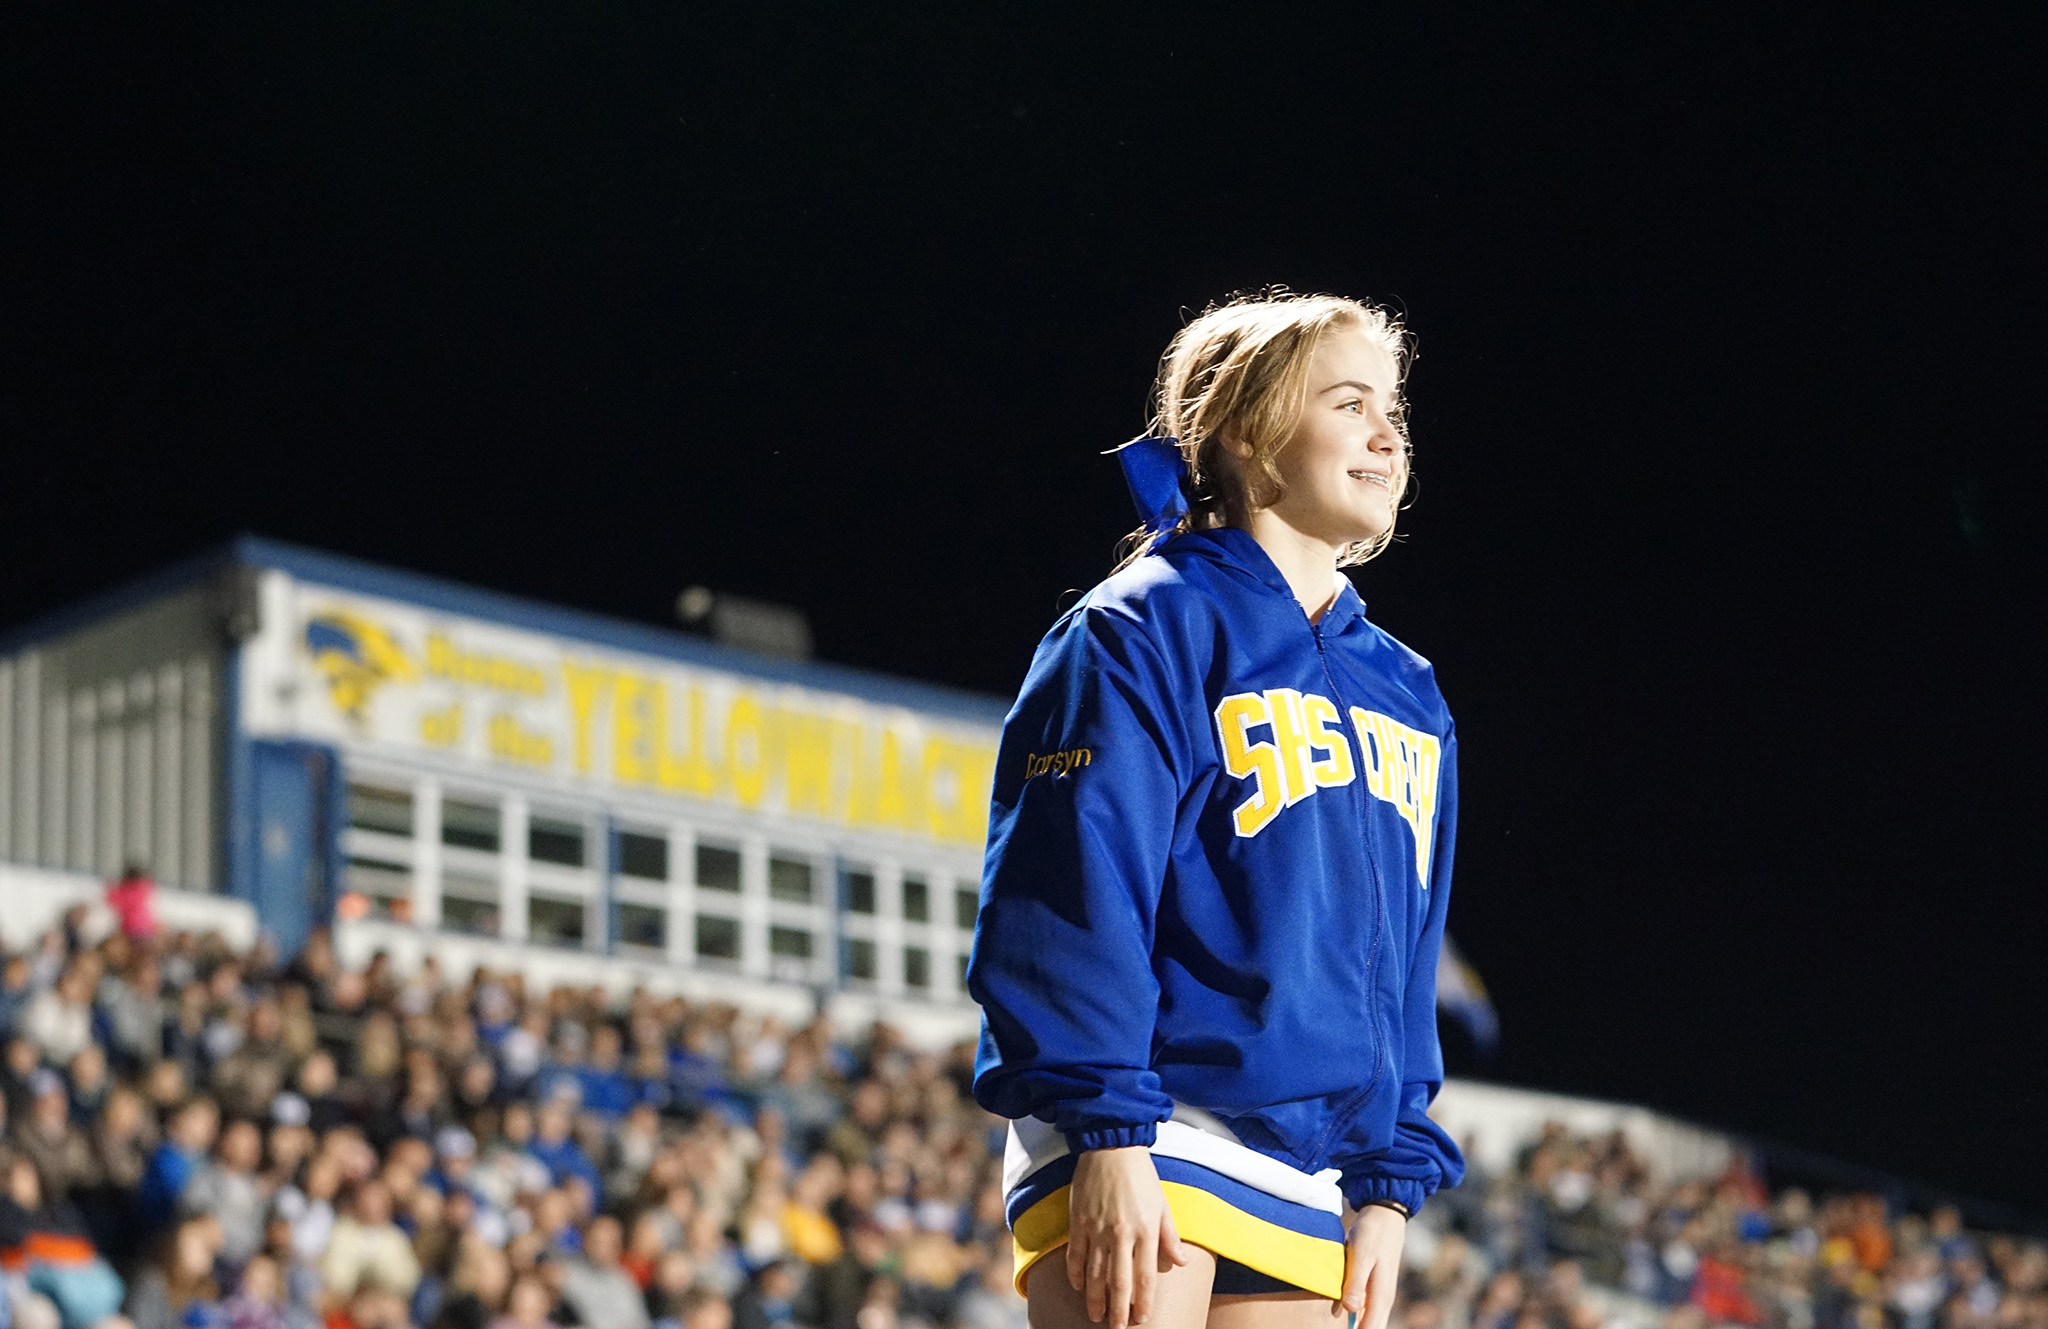 Cheerleader in front of stands